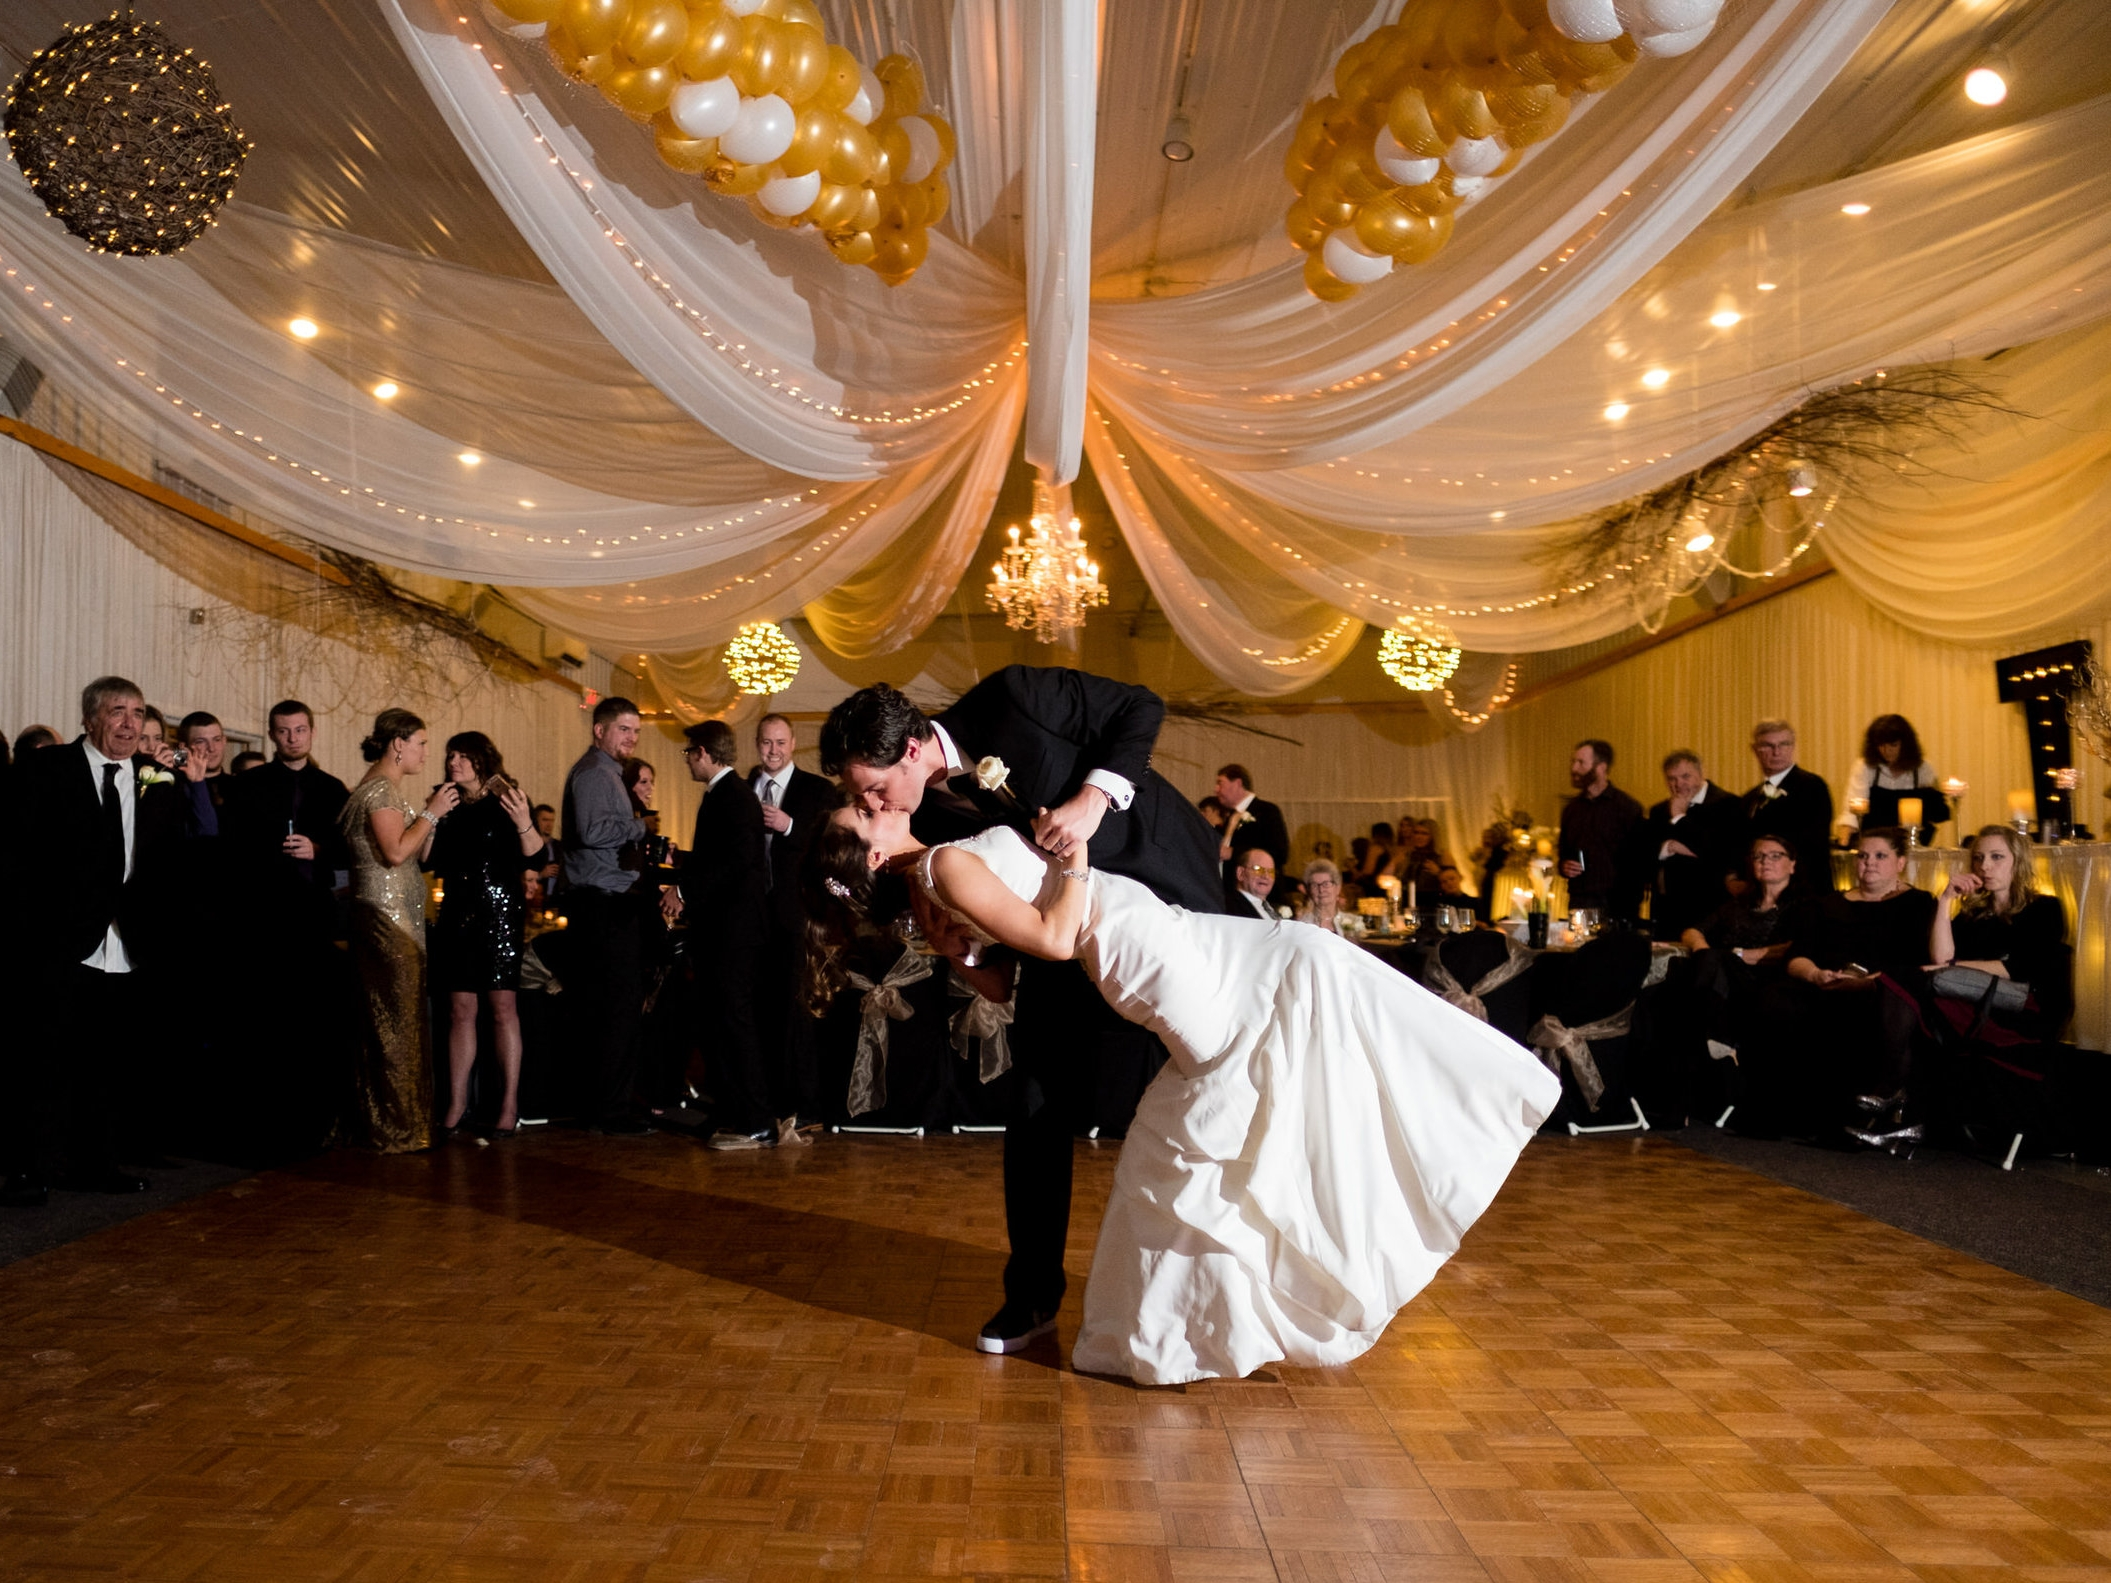 winter wedding dance at pine peaks event center in crosslake, mn